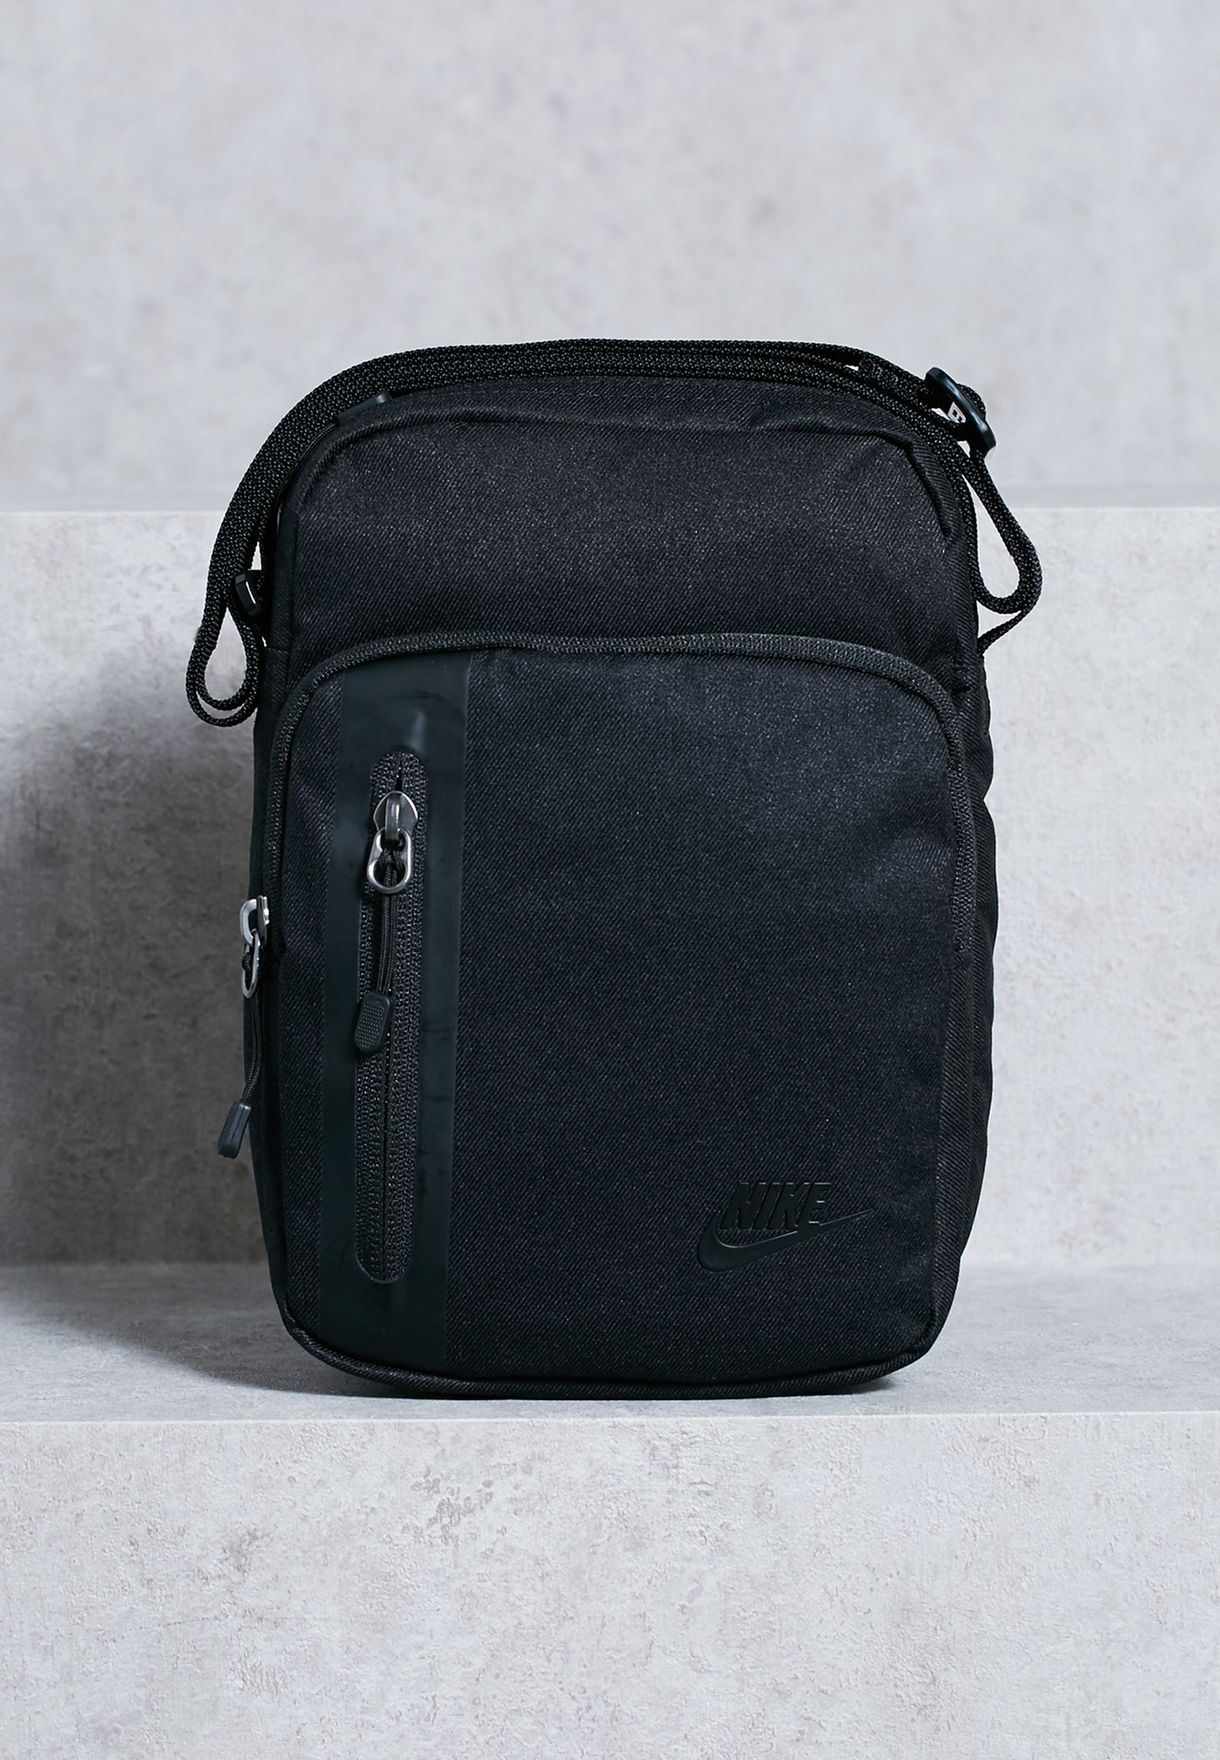 44cbcd4151d1 Shop Nike black Small Core Items 3.0 Messenger BA5268-010 for Men in ...